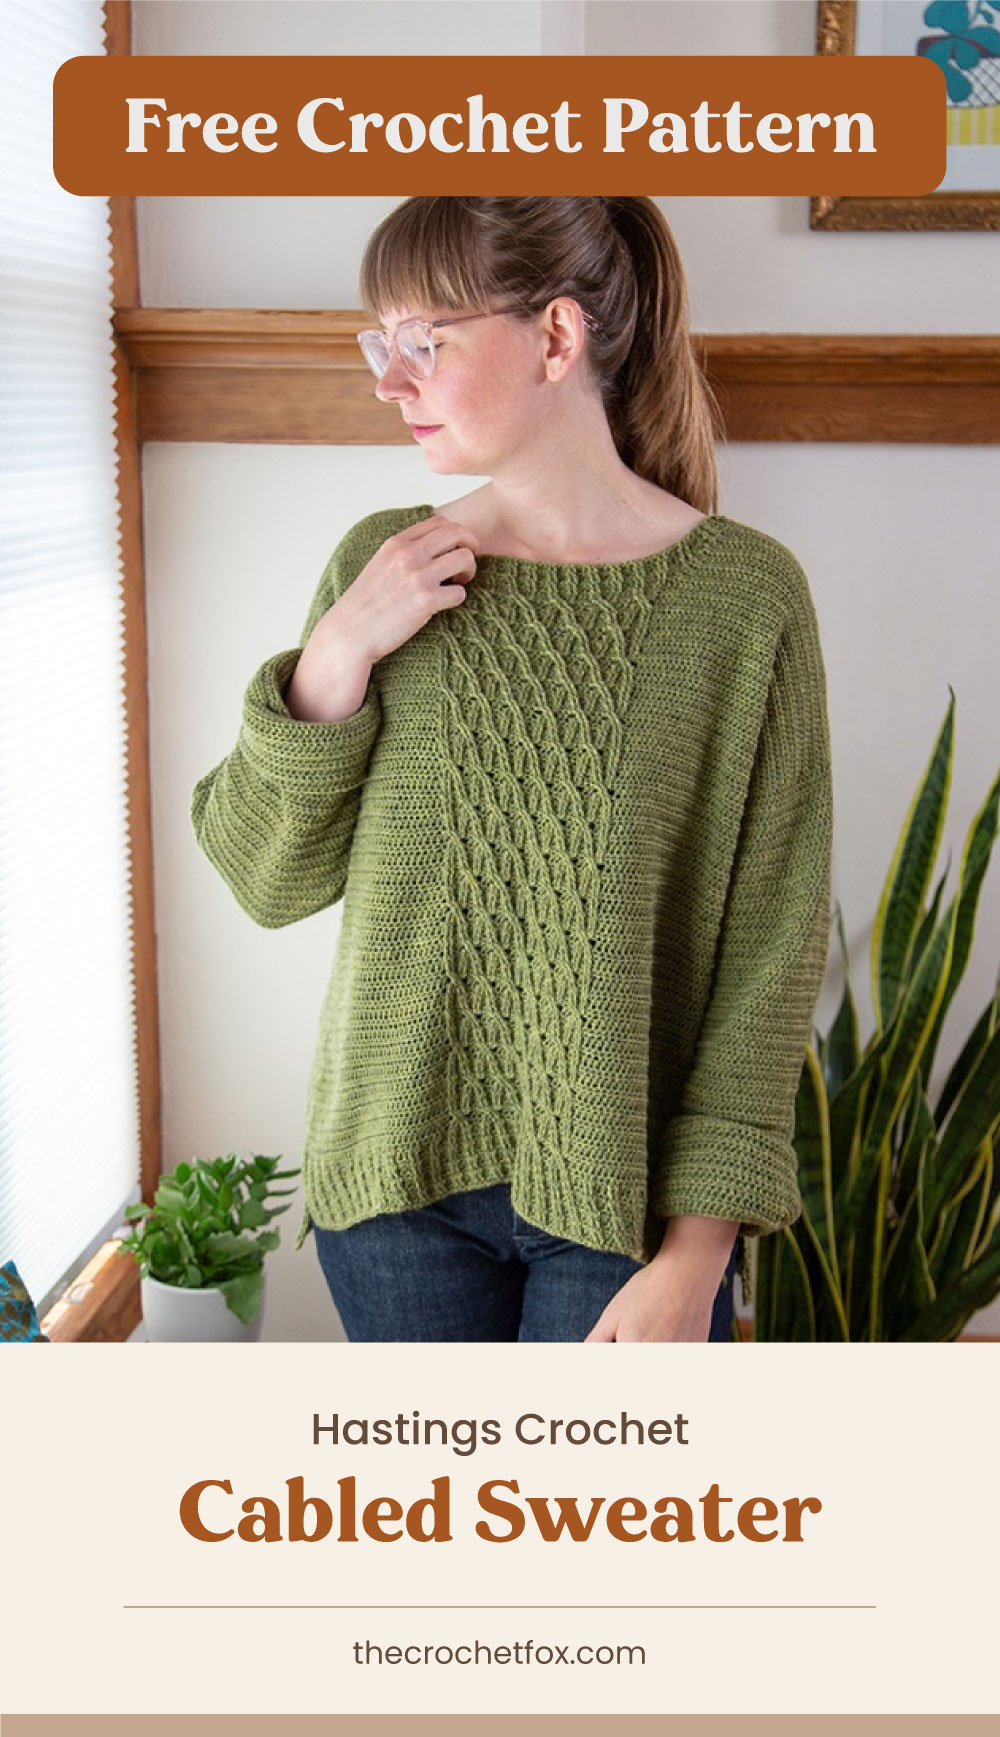 """Text area which says """"Free Crochet Pattern"""" next to a bespectacled woman in a ponytail wearing a crocheted green sweater followed by another text area which says """"Hastings Crochet Cabled Sweater, thecrochetfox.com"""""""